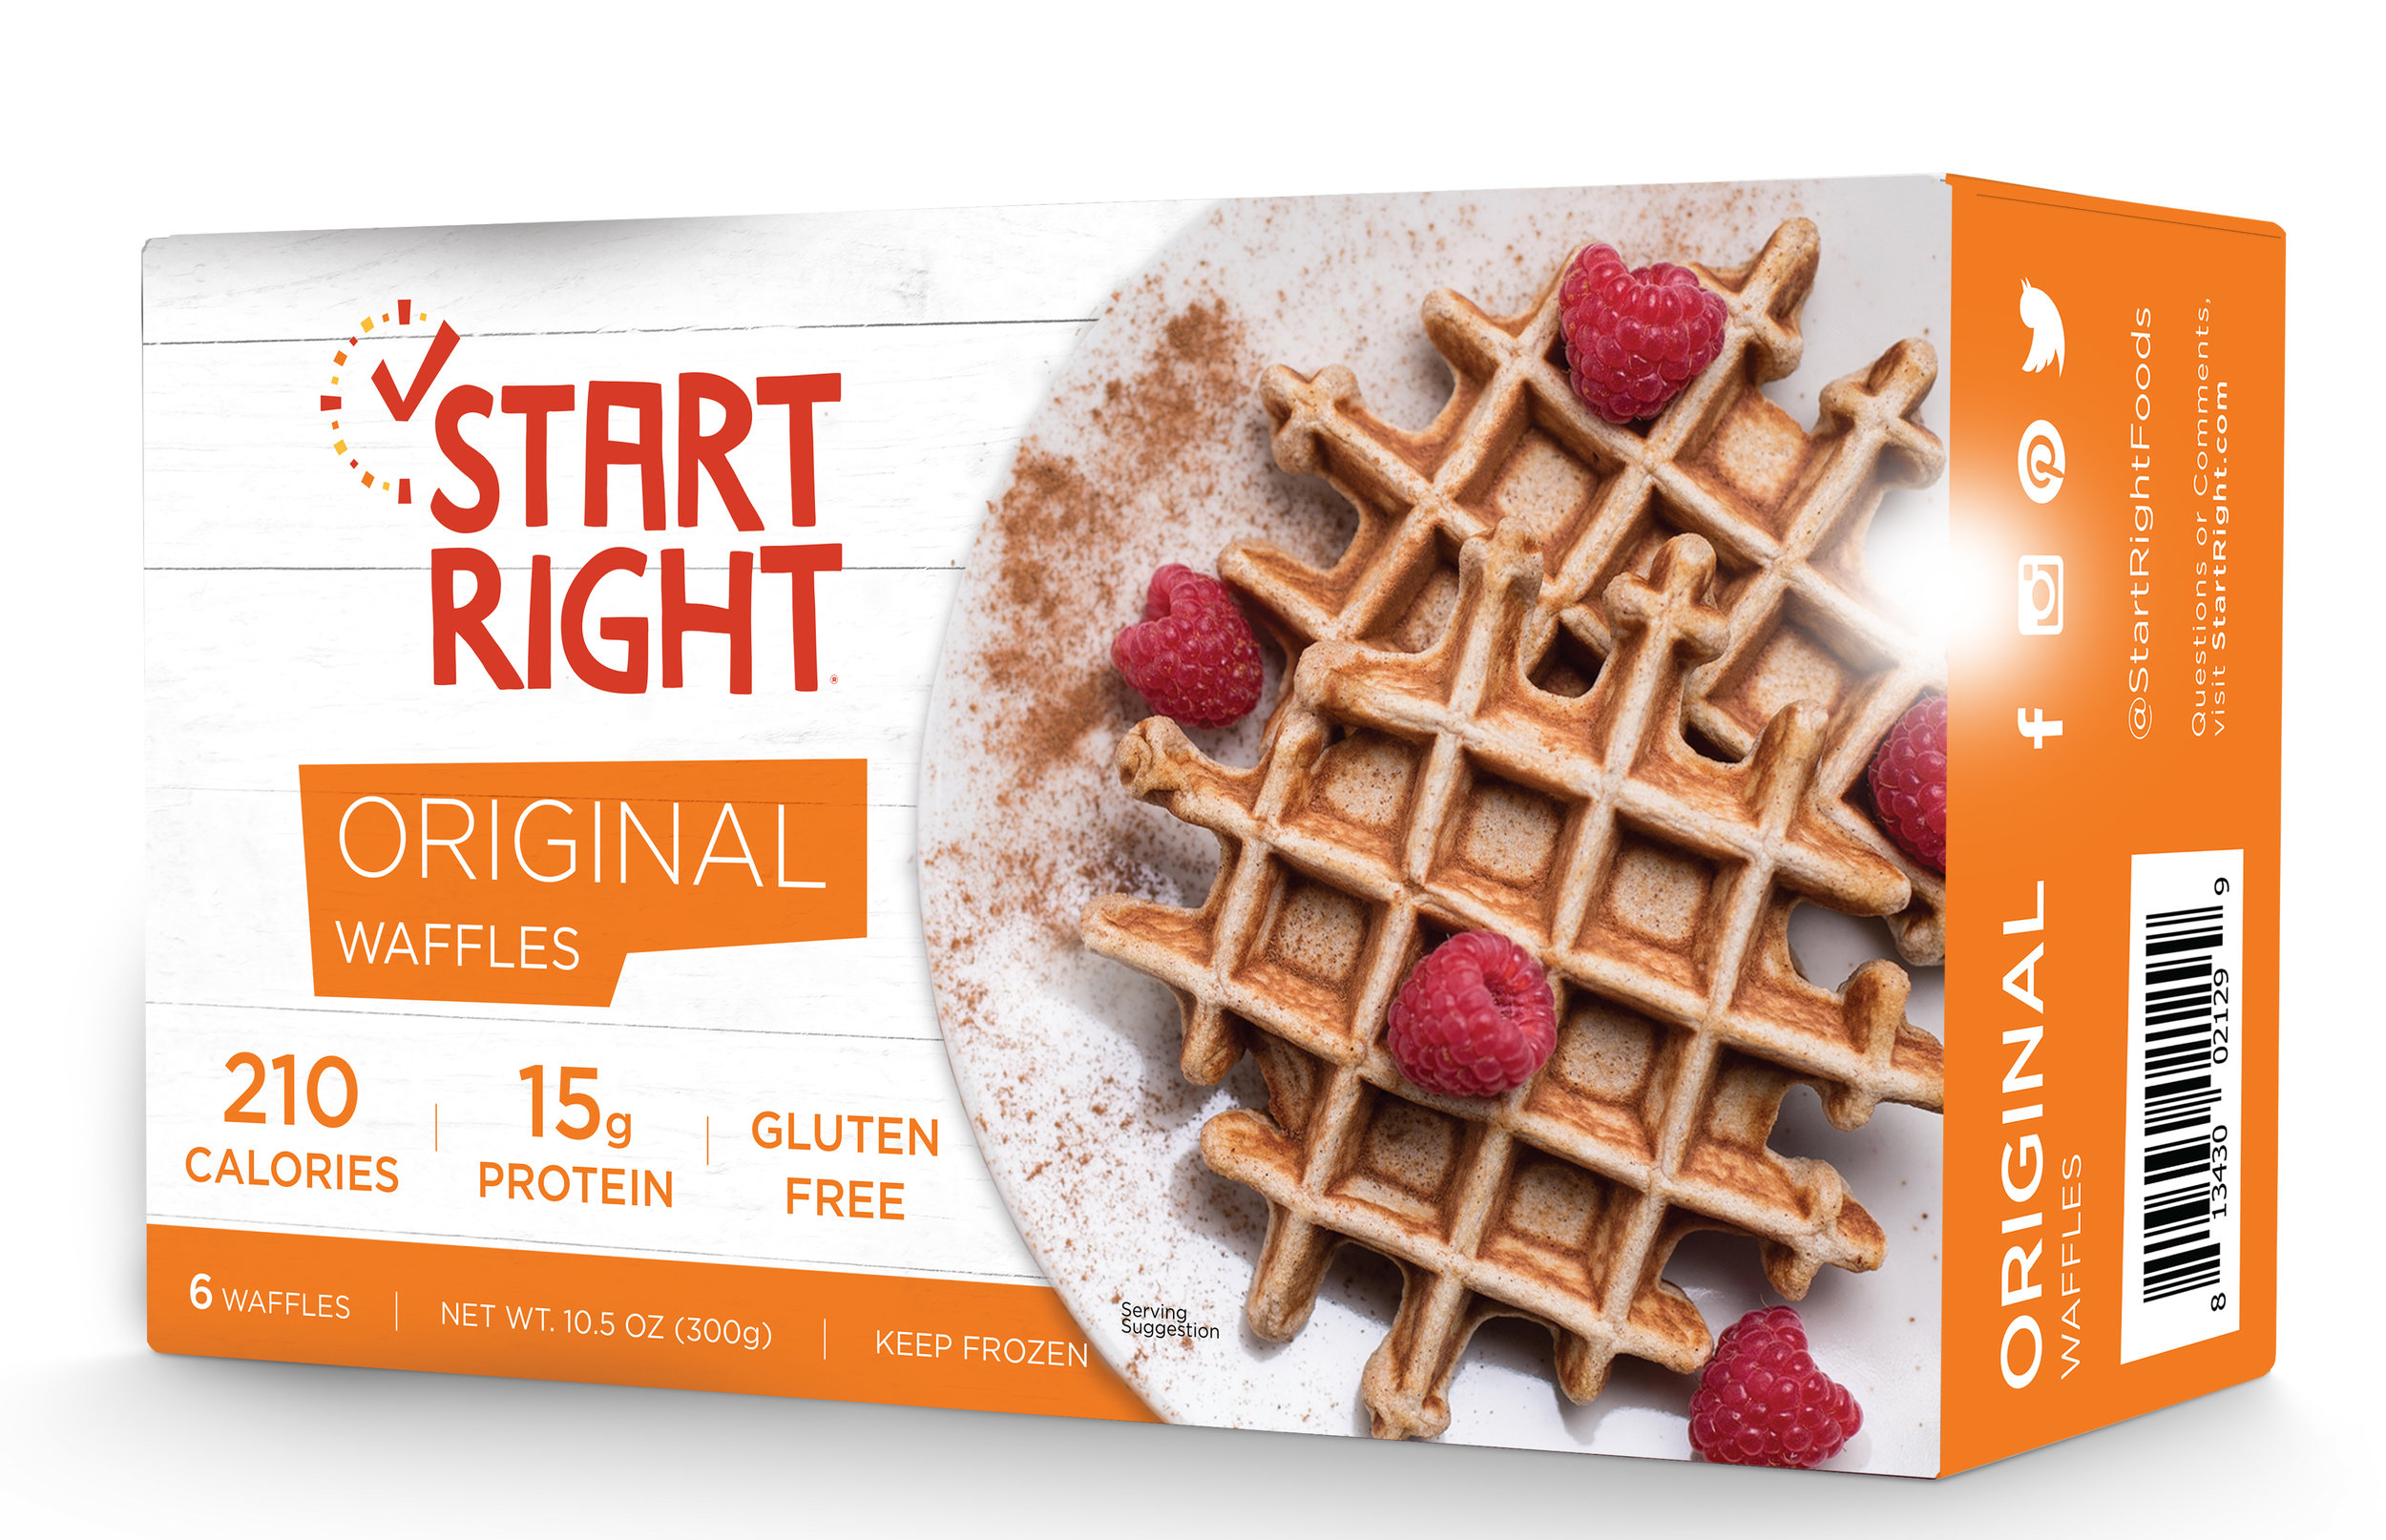 Belgian Waffles, Protein Waffles, High protein waffles, toaster waffles, frozen waffles, high protein frozen waffles, protein toaster waffles